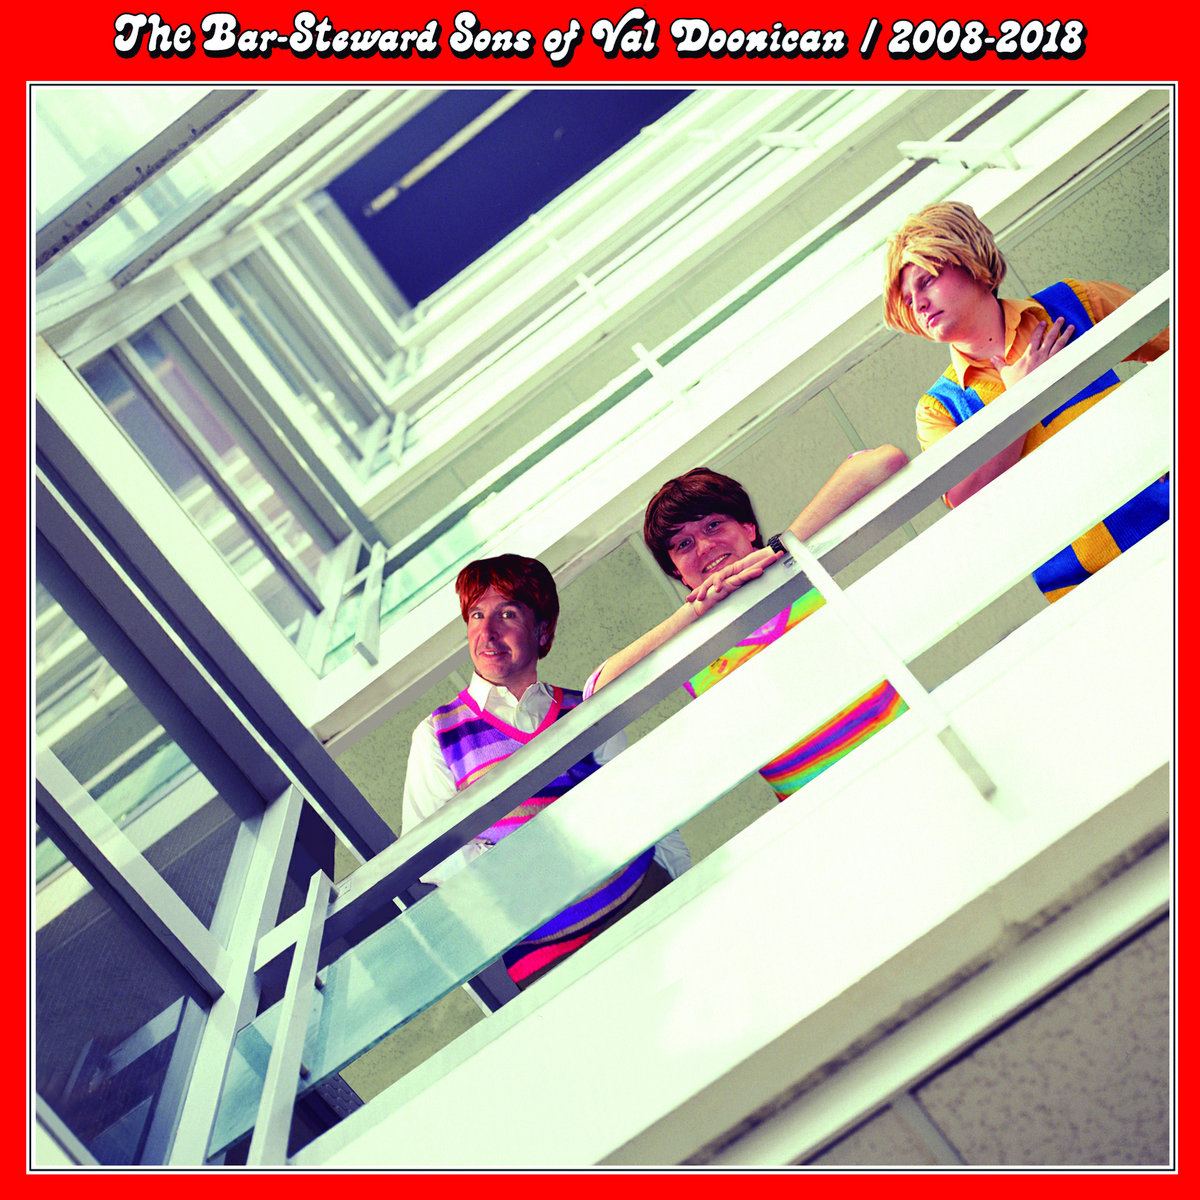 Val doonican songs free download.